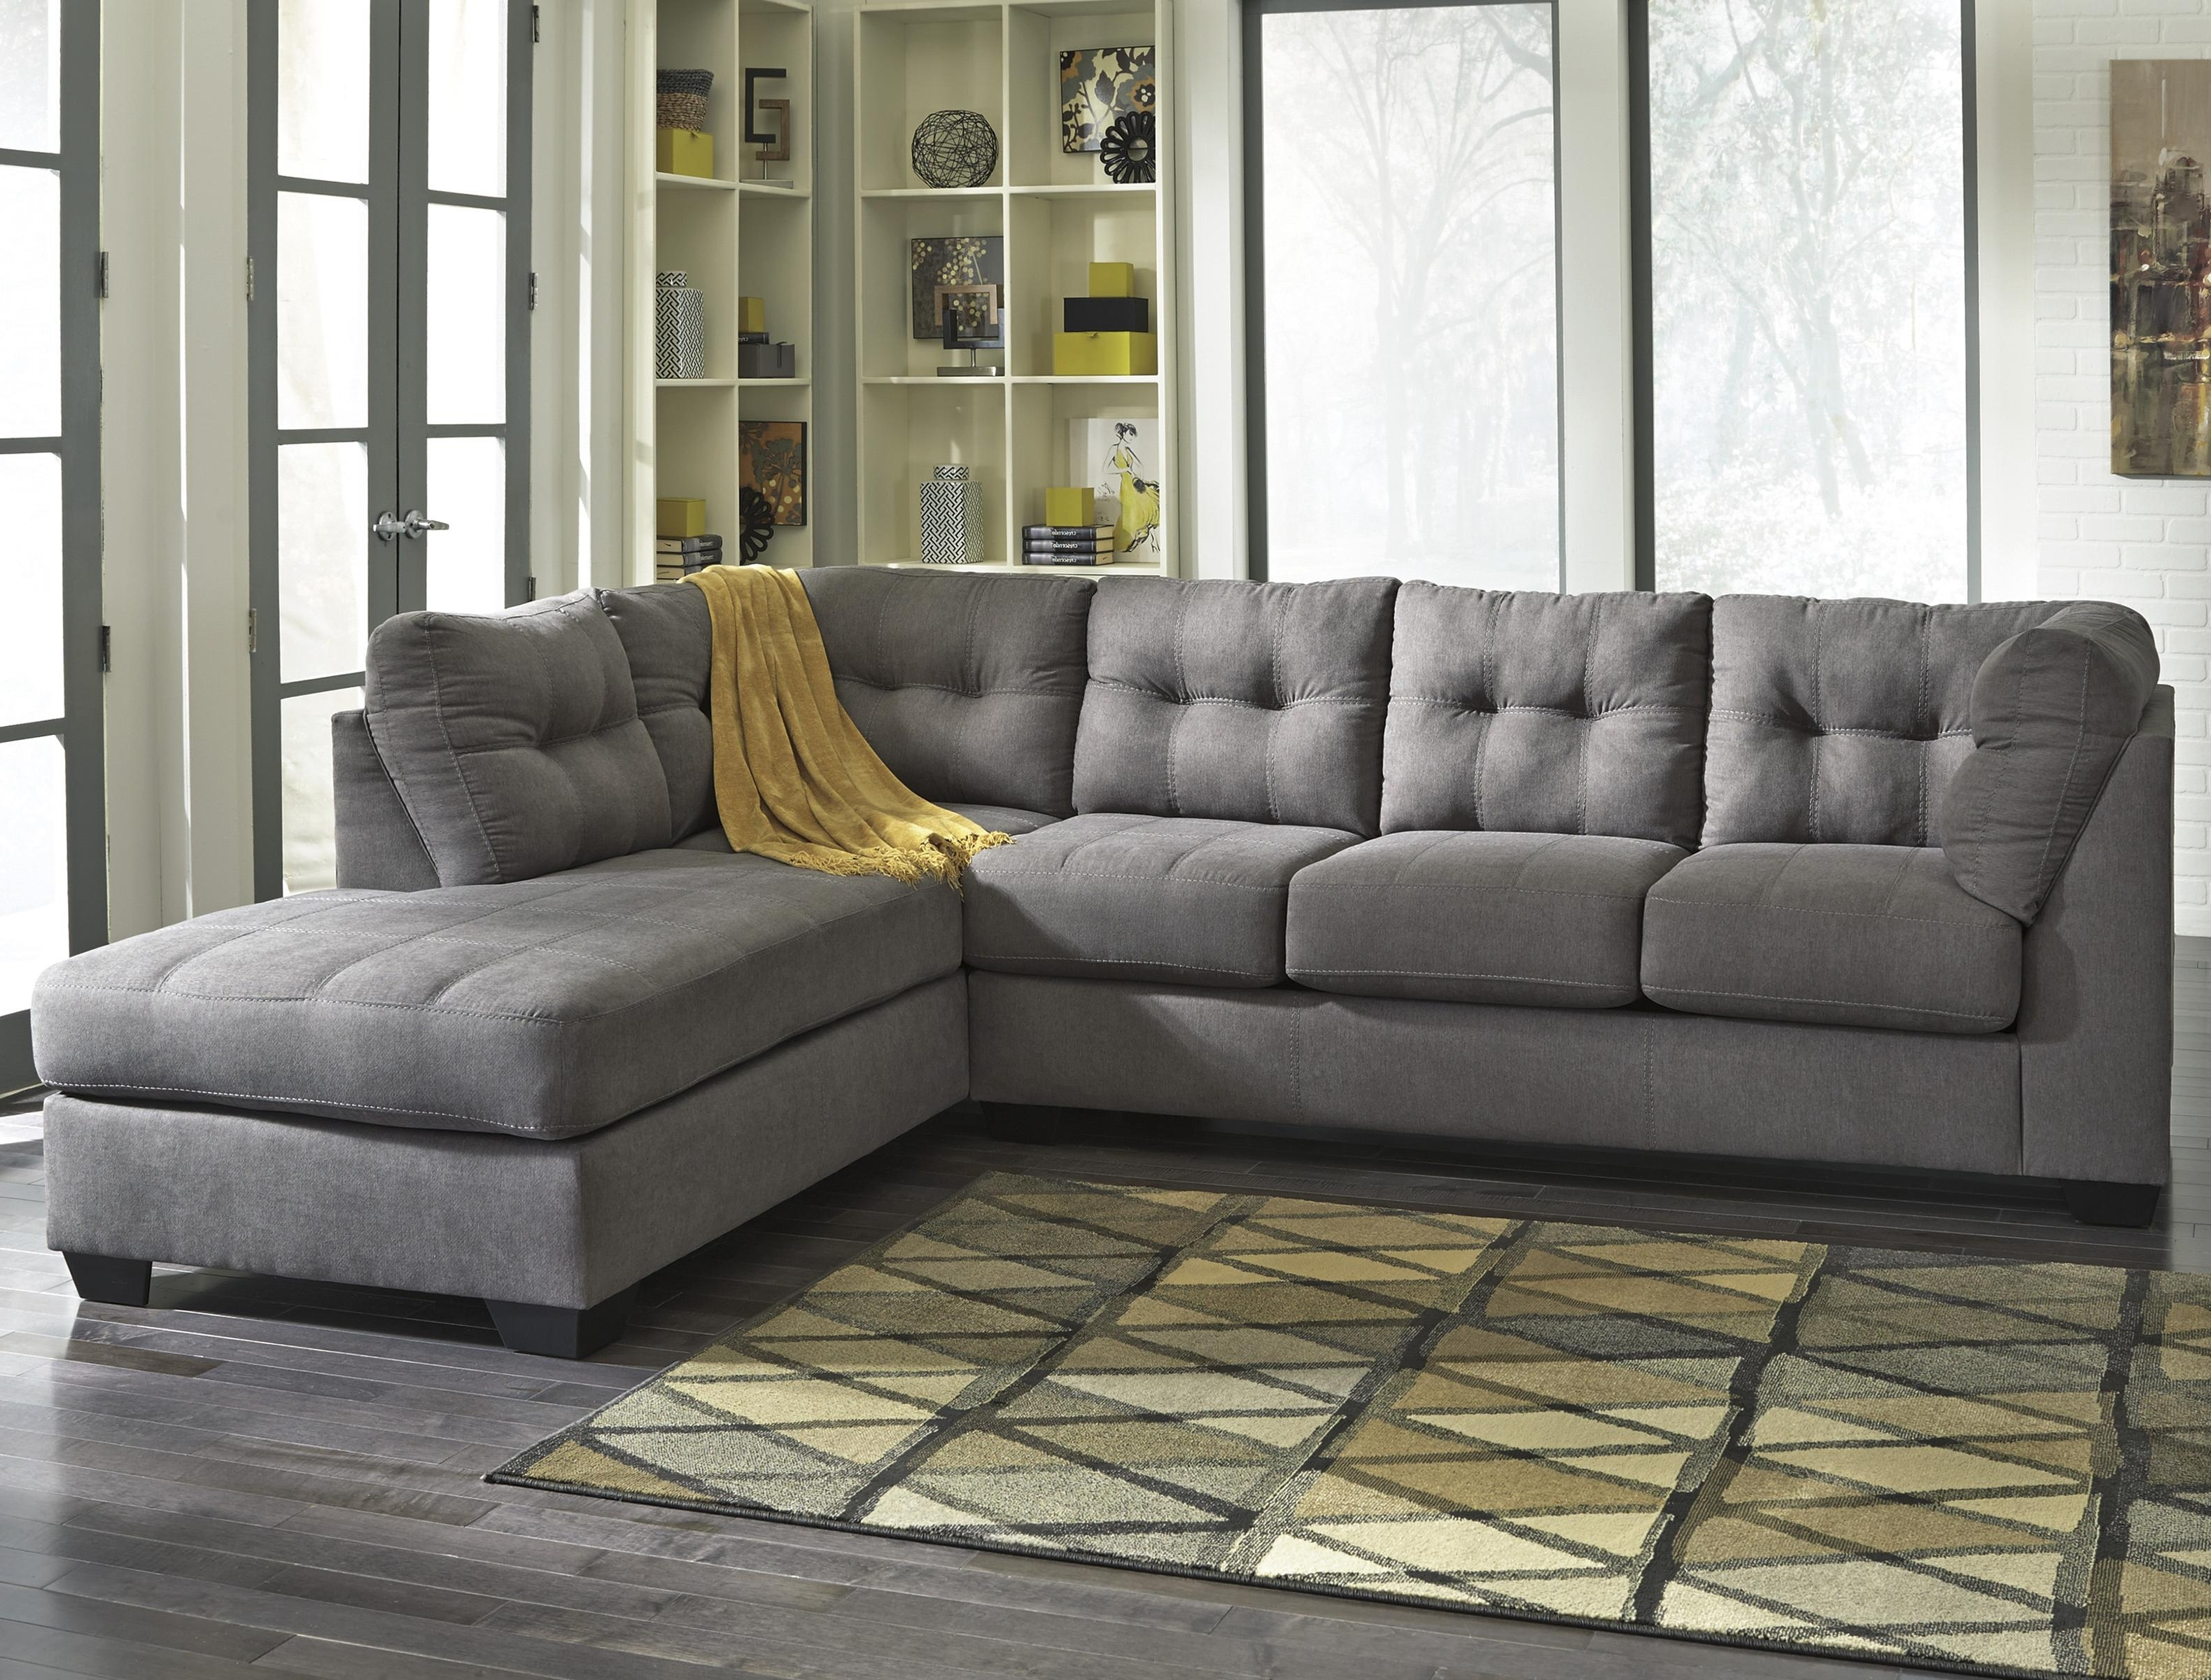 East Bay Sectional Sofas Pertaining To Favorite Benchcraft Maier – Charcoal 2 Piece Sectional With Right Chaise (Gallery 6 of 20)